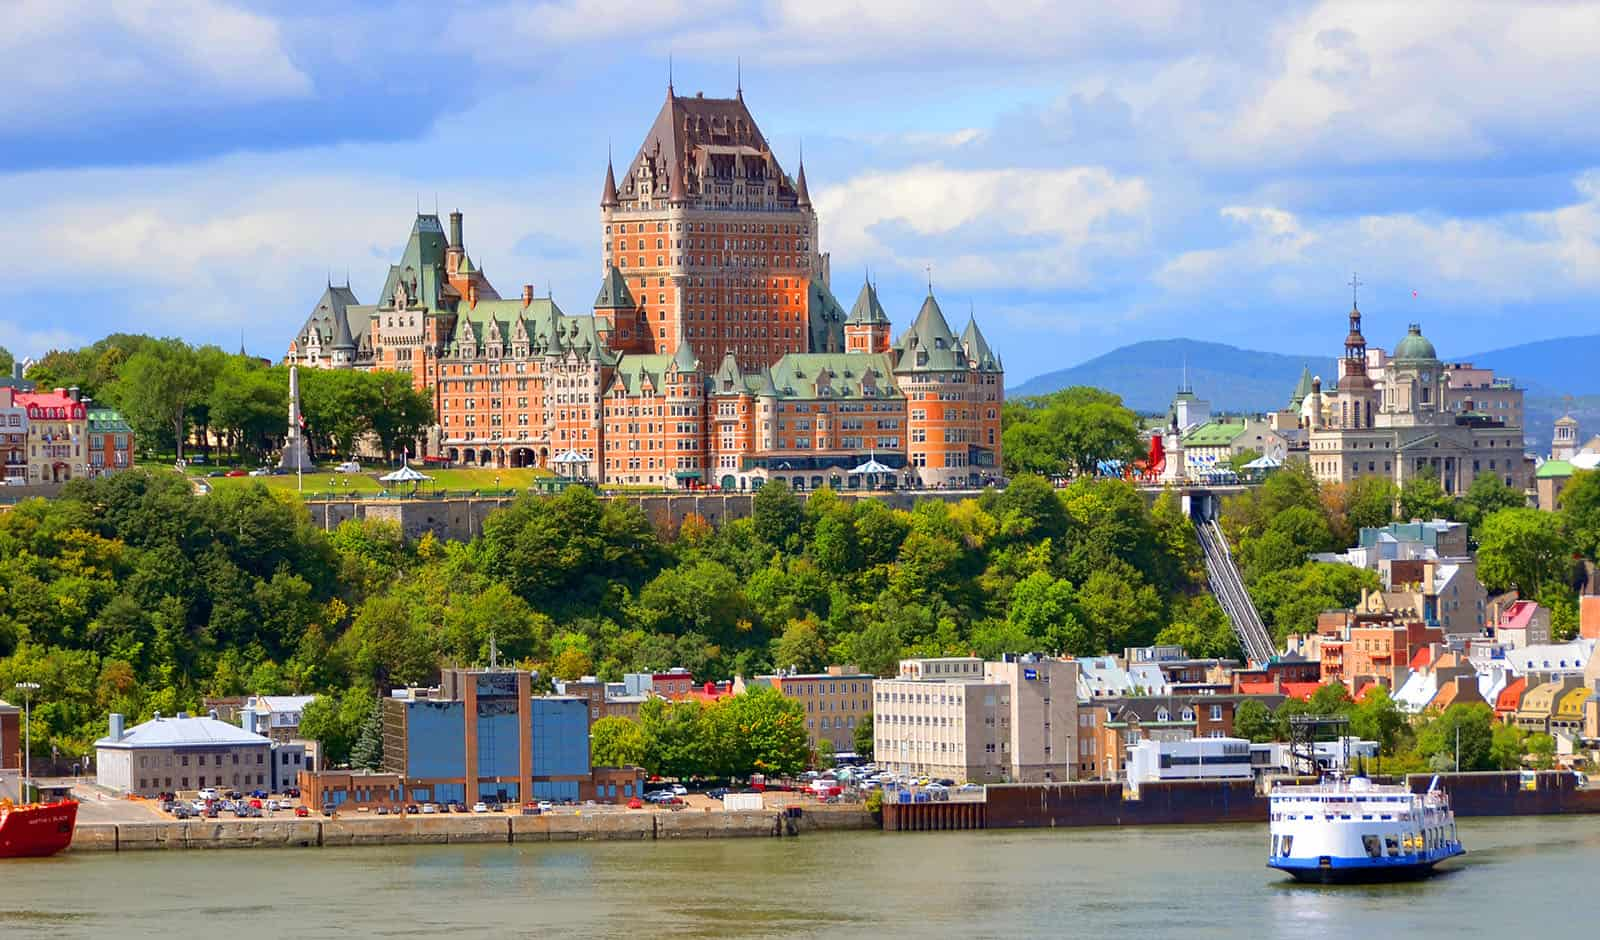 QUEBEC CITY, CANADA – AUGUST 27: From Levis Chateau Frontenac of